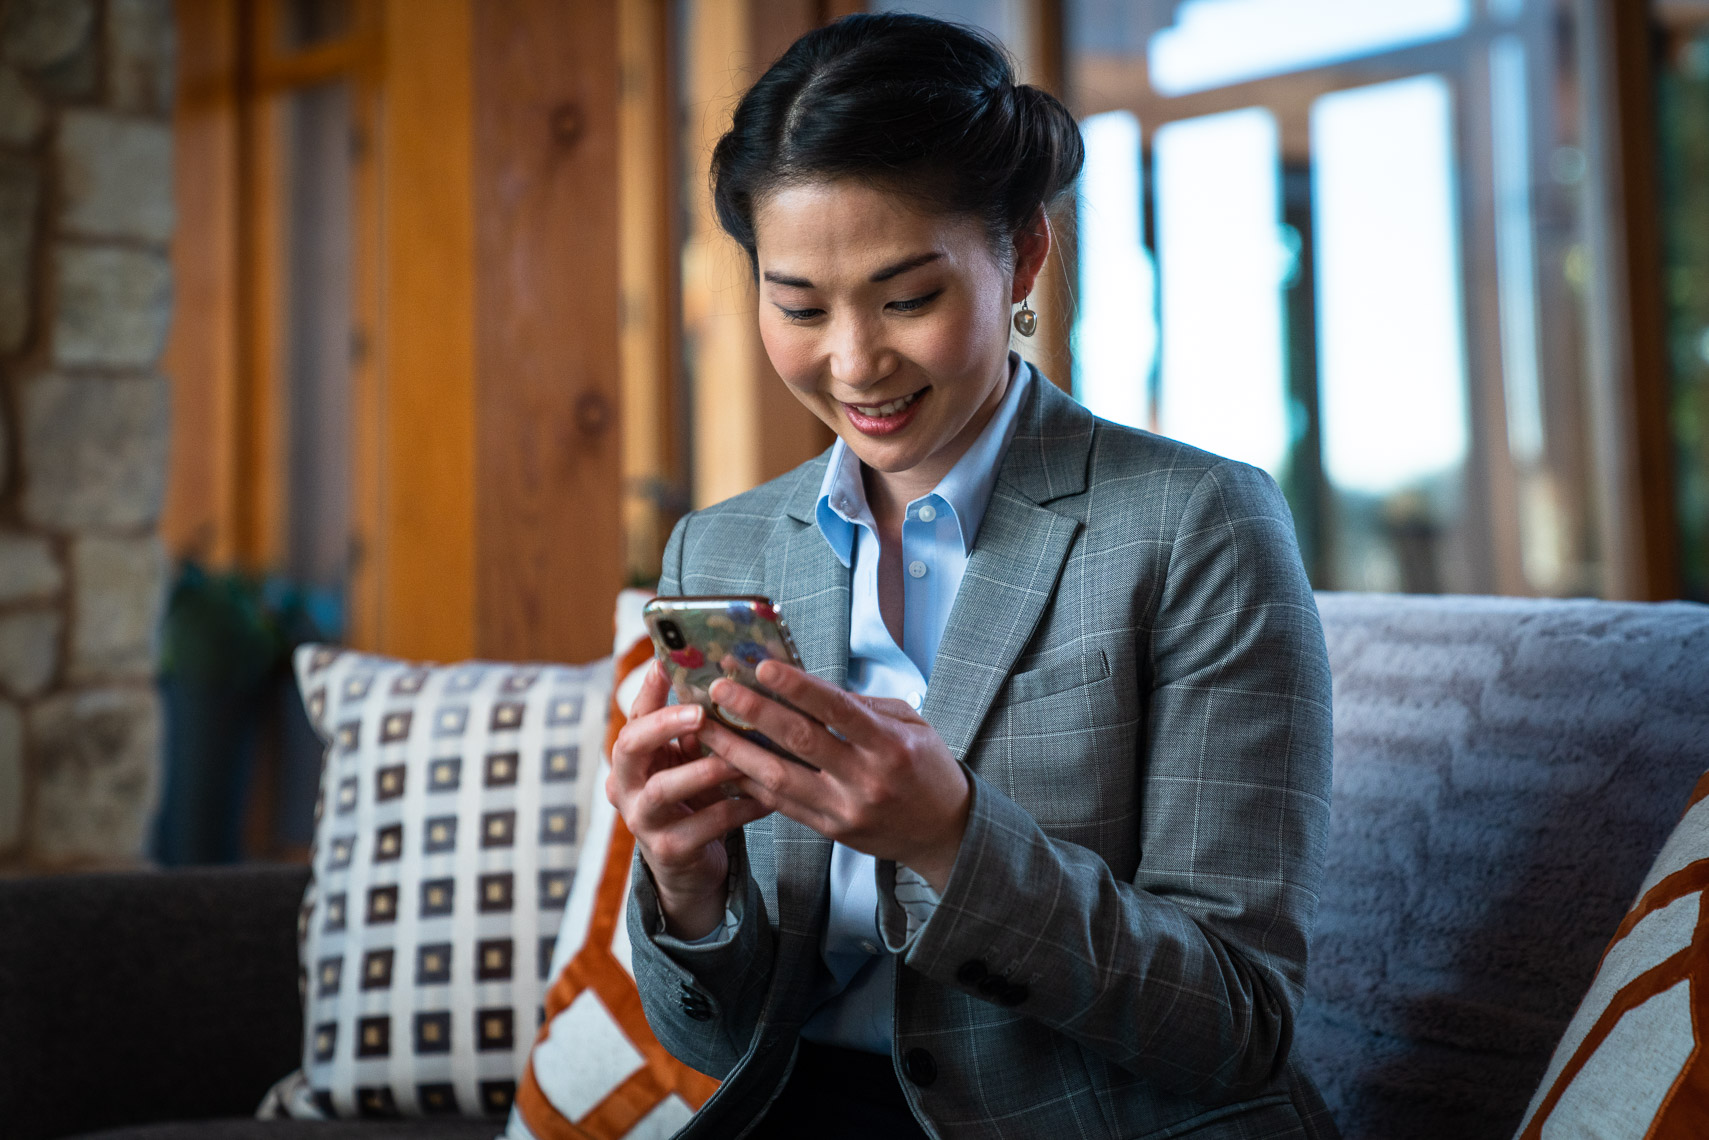 Avast - Asian Female Traveler On Smartphone